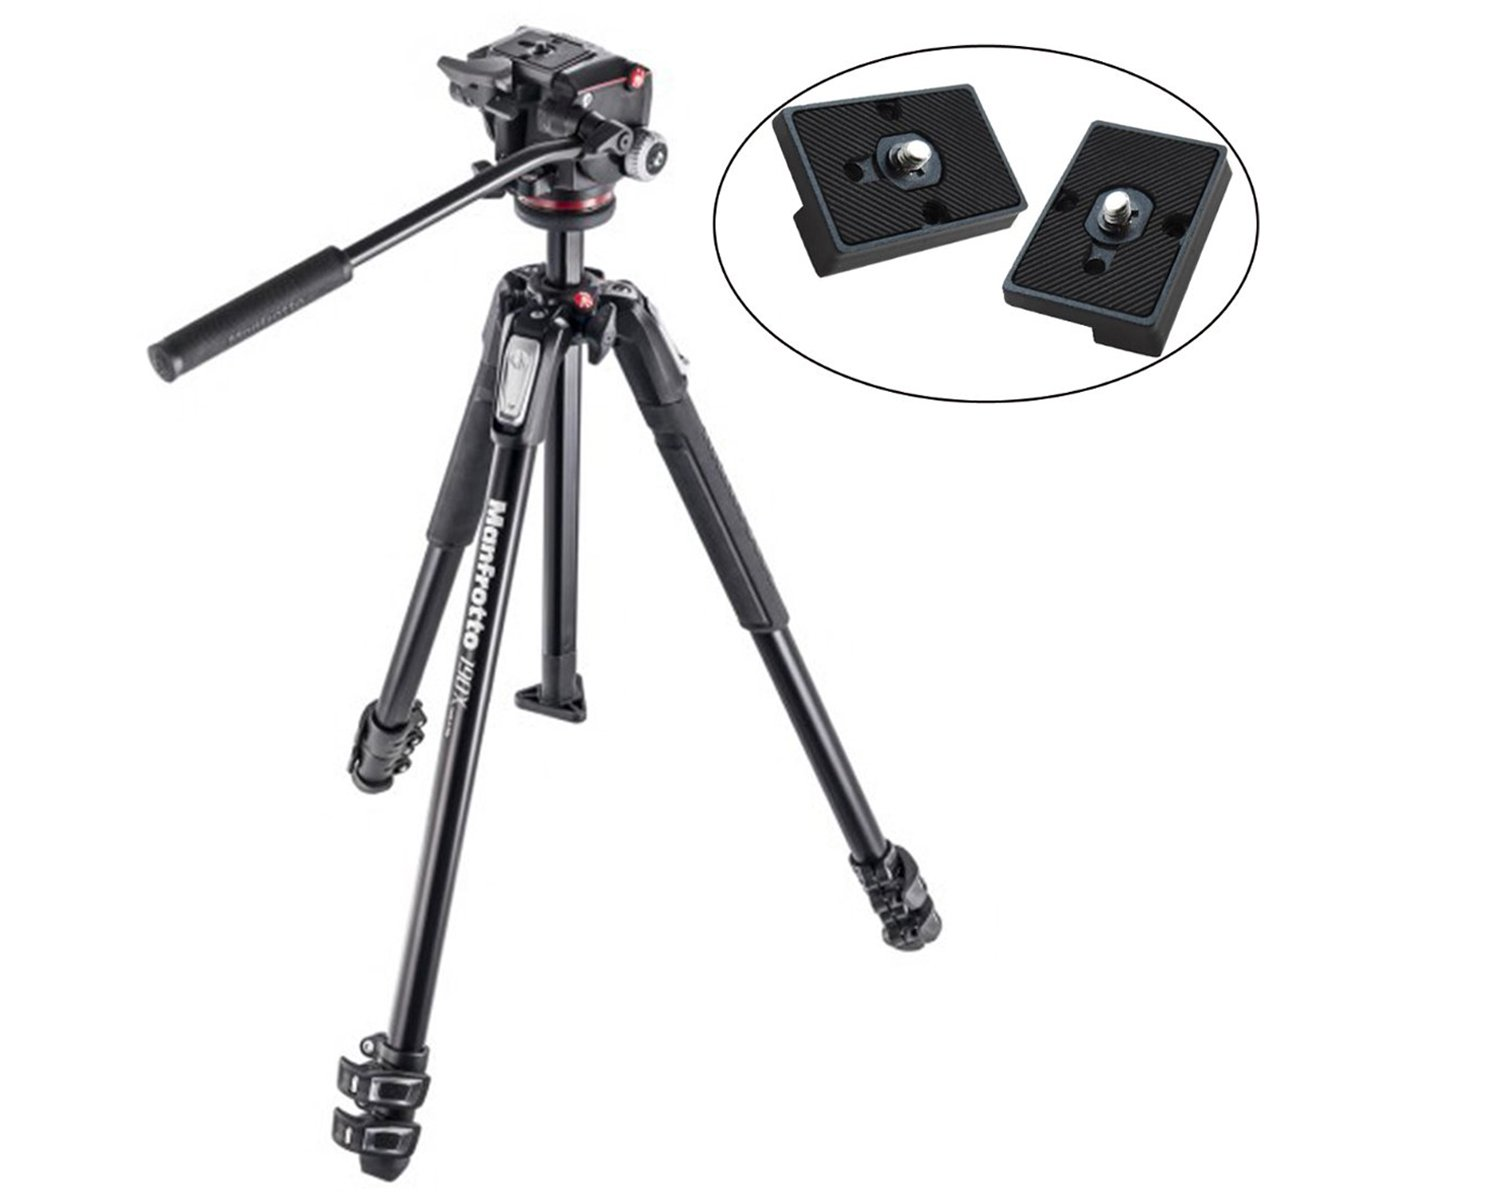 Manfrotto MK190X3-2W 190 Aluminum 3 Section Tripod Kit with MHXPRO-2W Fluid Head (Black) and Two ZAYKIR Quick Release Plates for the RC2 Rapid Connect Adapter